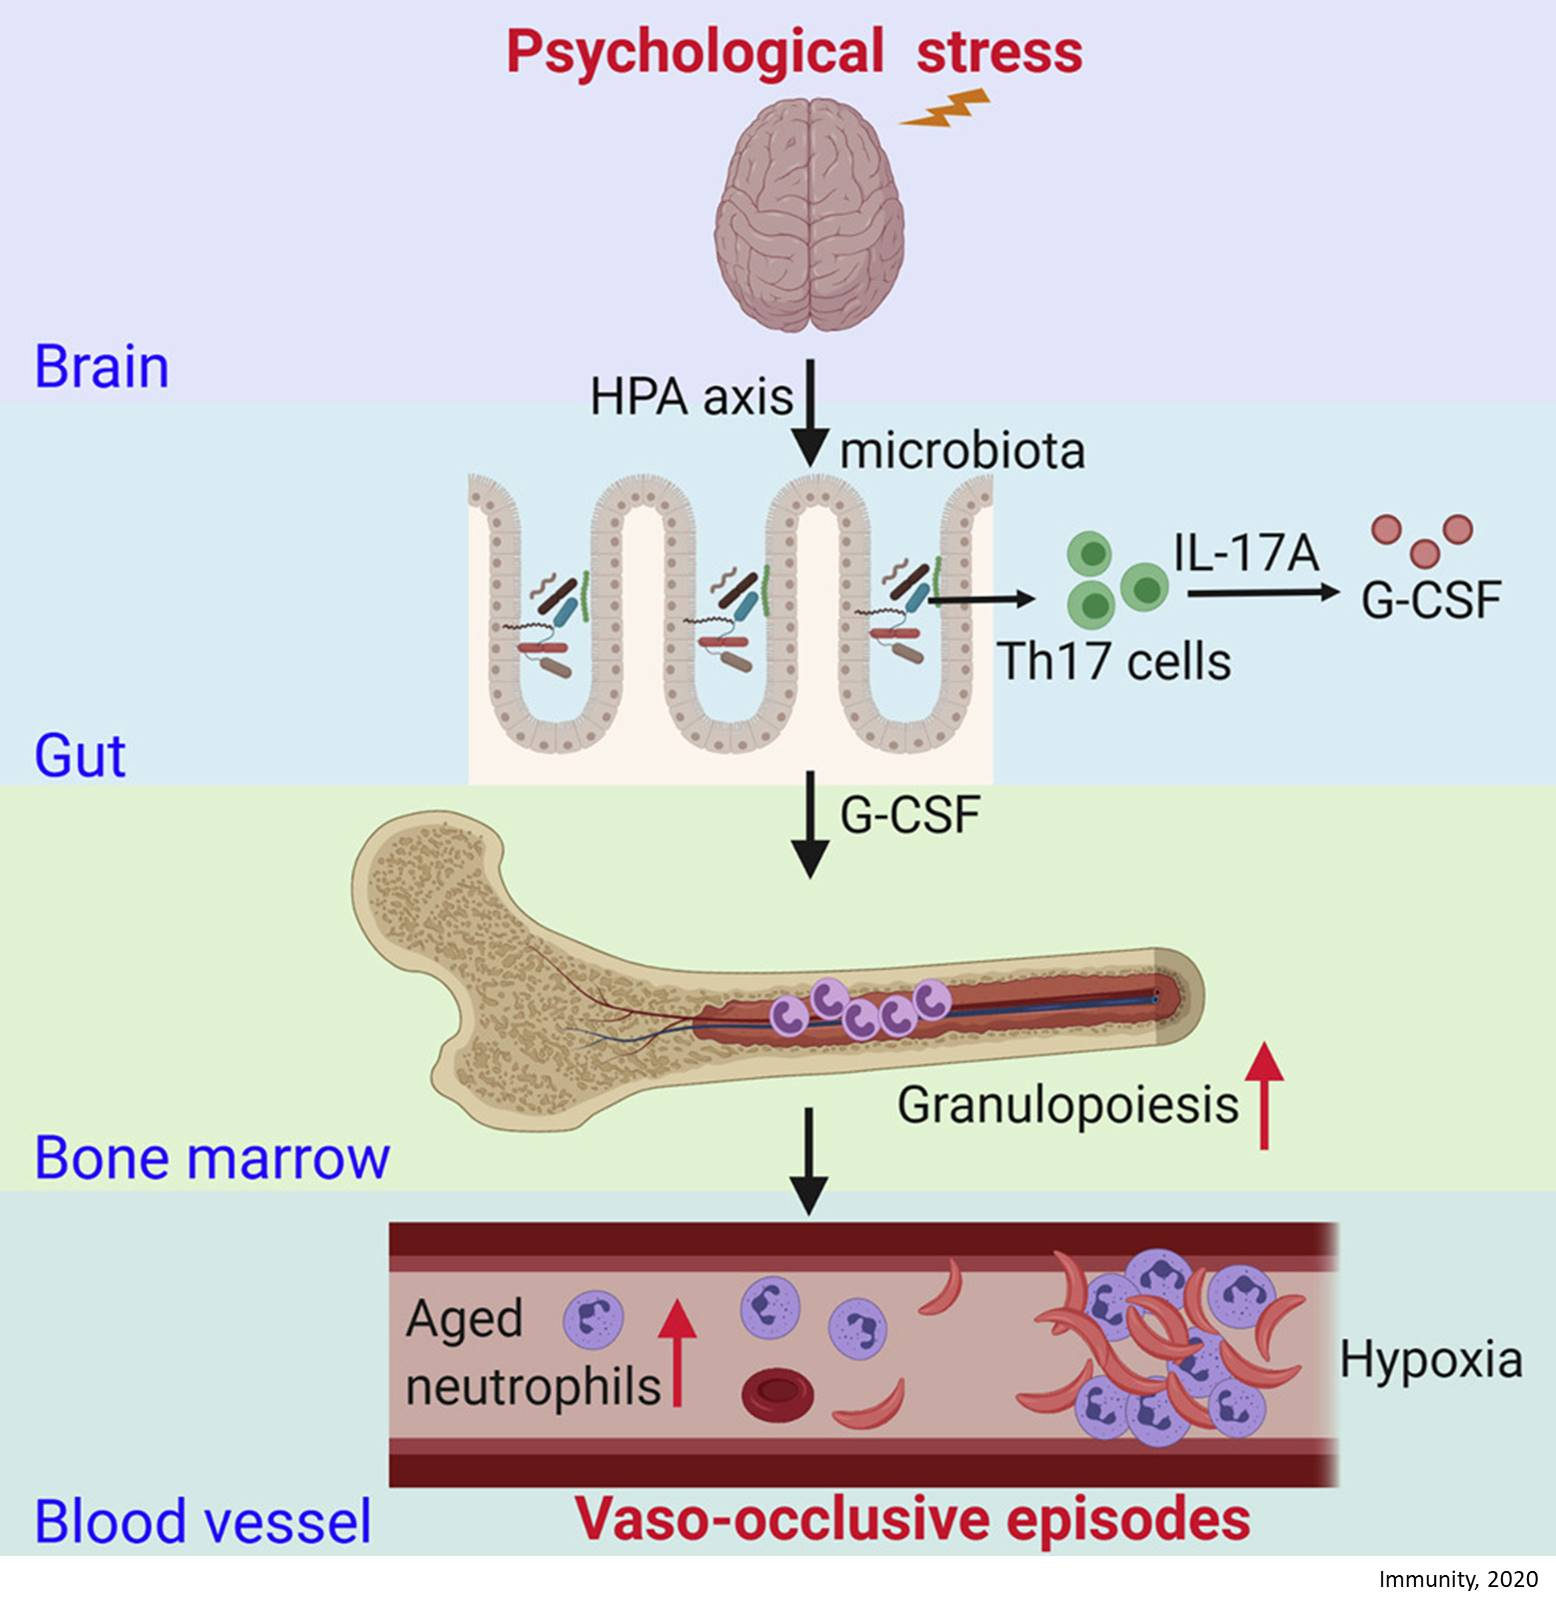 The Gut Microbiome Regulates Psychological-Stress-Induced Inflammation